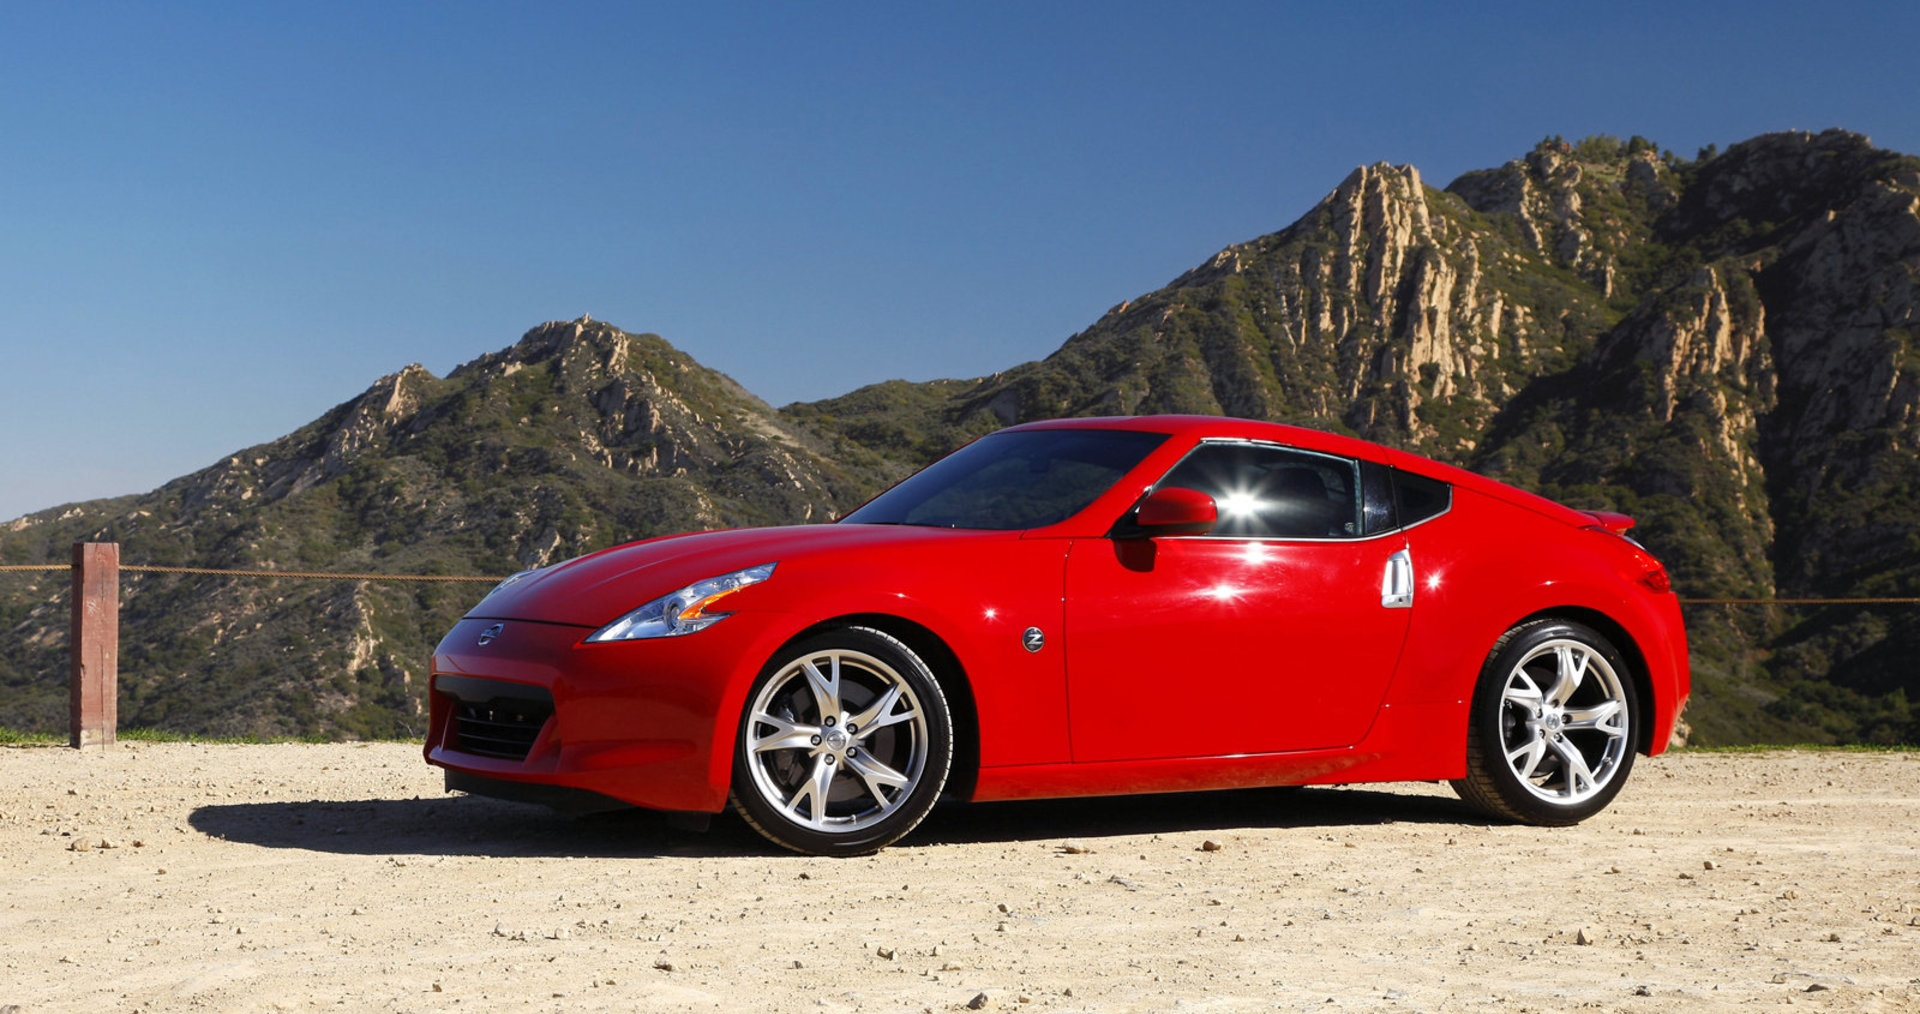 Nissan March Tuning >> Nissan 370Z - The Affordable Sports Car